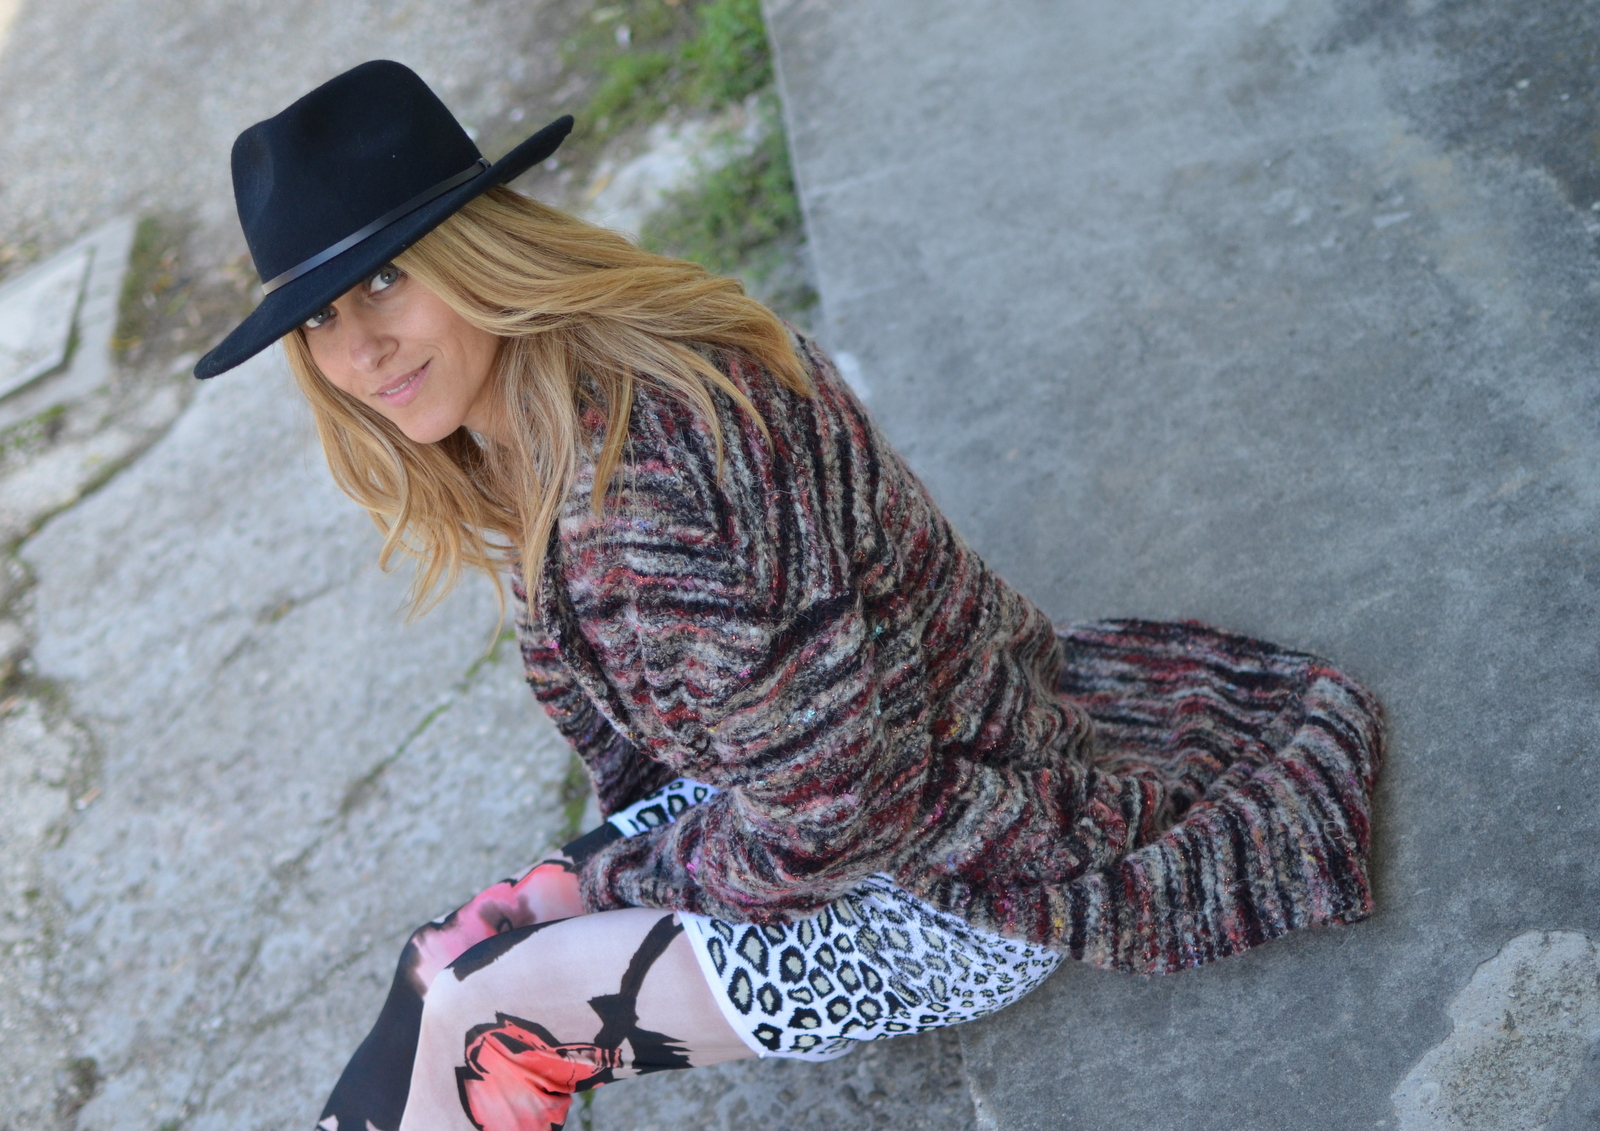 MINI COAT E FLOREAL LEGGINS (8)